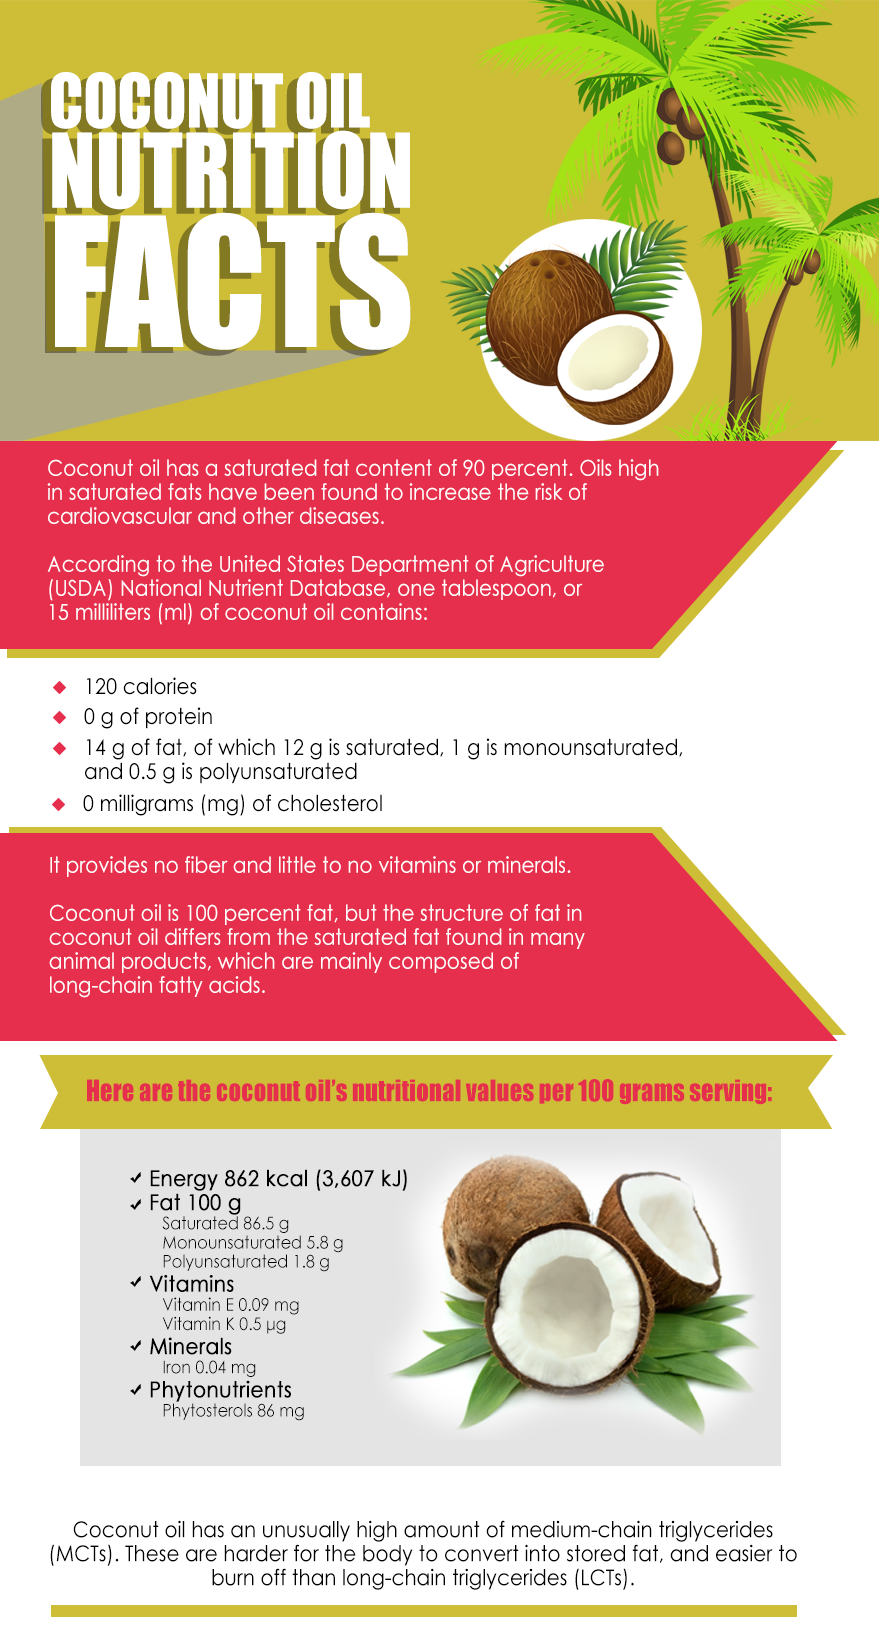 image of Coconut Oil Nutrition Facts